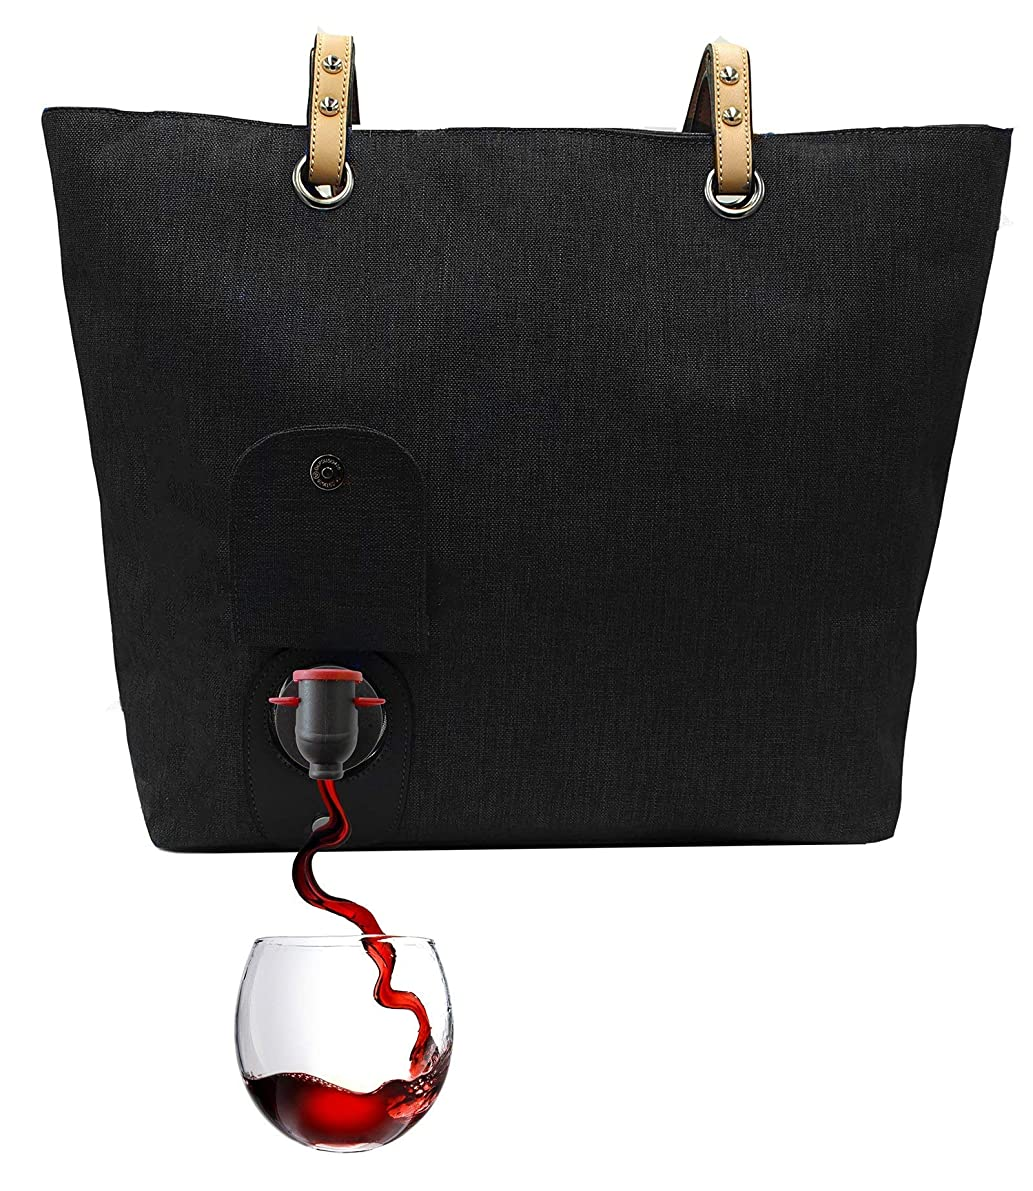 PortoVino City Wine Tote (Black) - Fashionable Wine Purse with Hidden, Insulated Compartment, Holds 2 bottles of Wine!